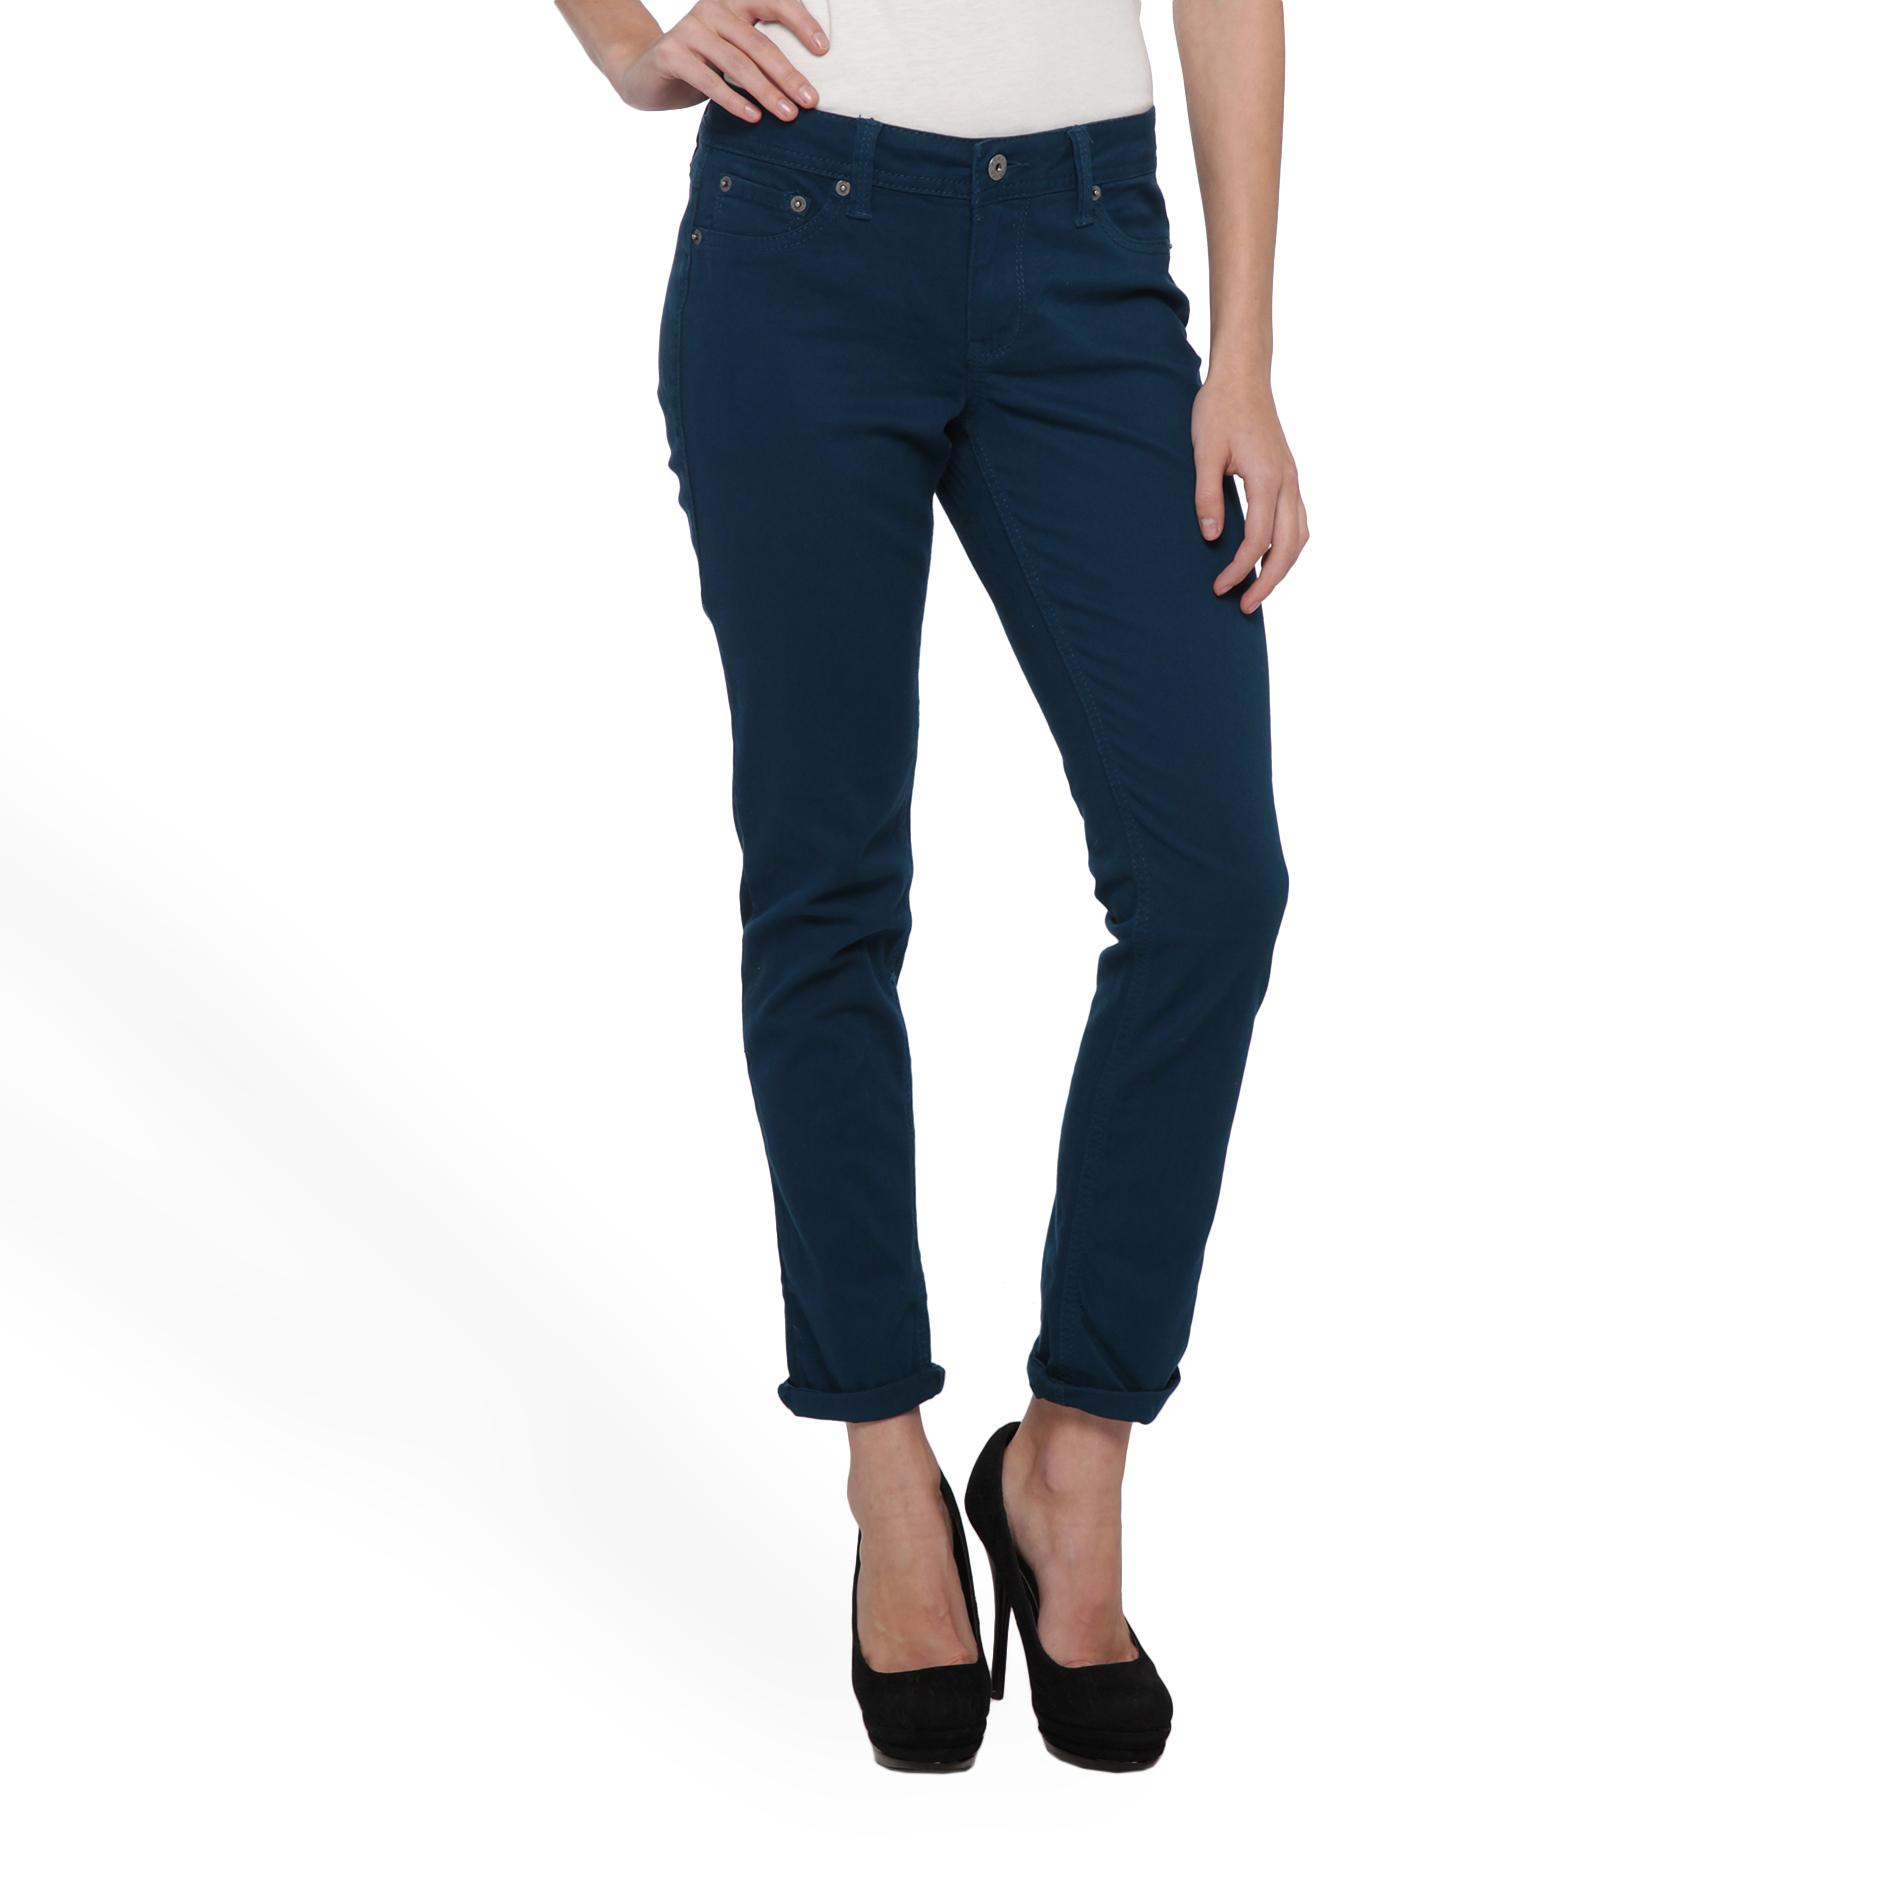 Bongo Junior's Ankle Jeans - Colored at Sears.com